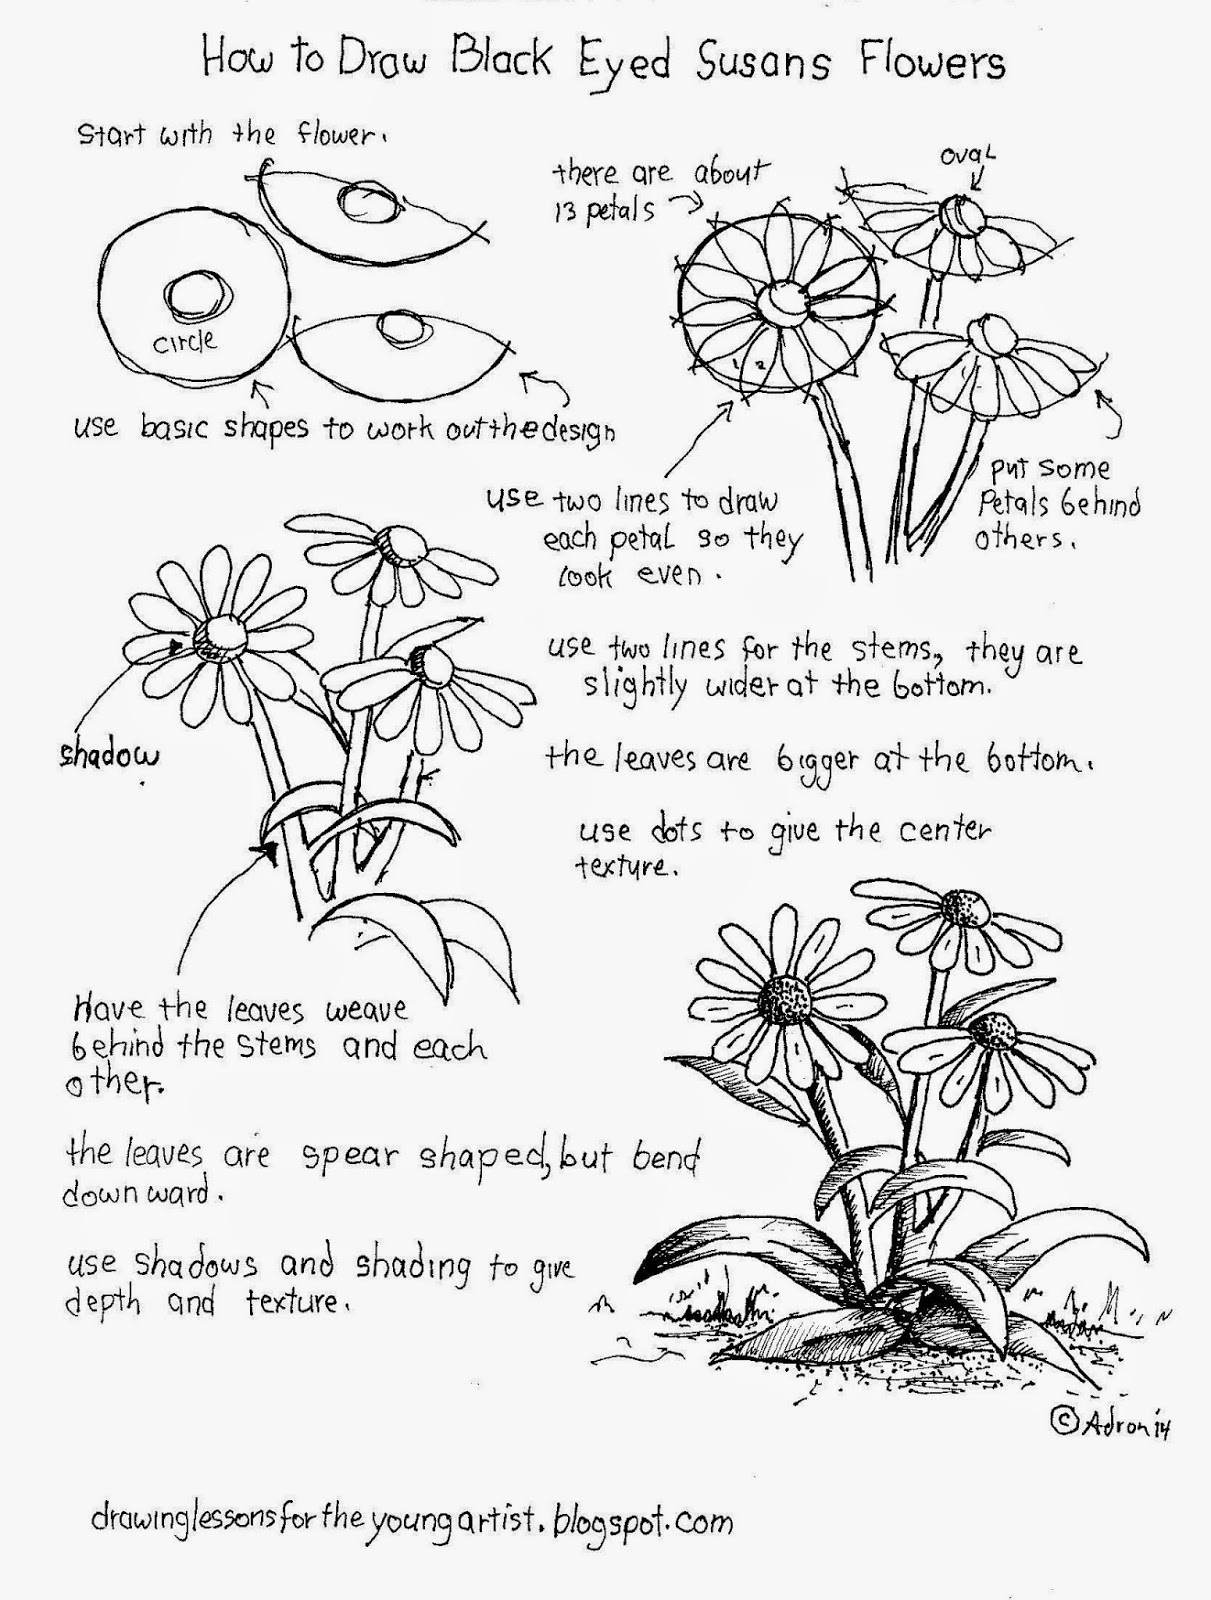 Flower Drawings To Draw And How To Draw